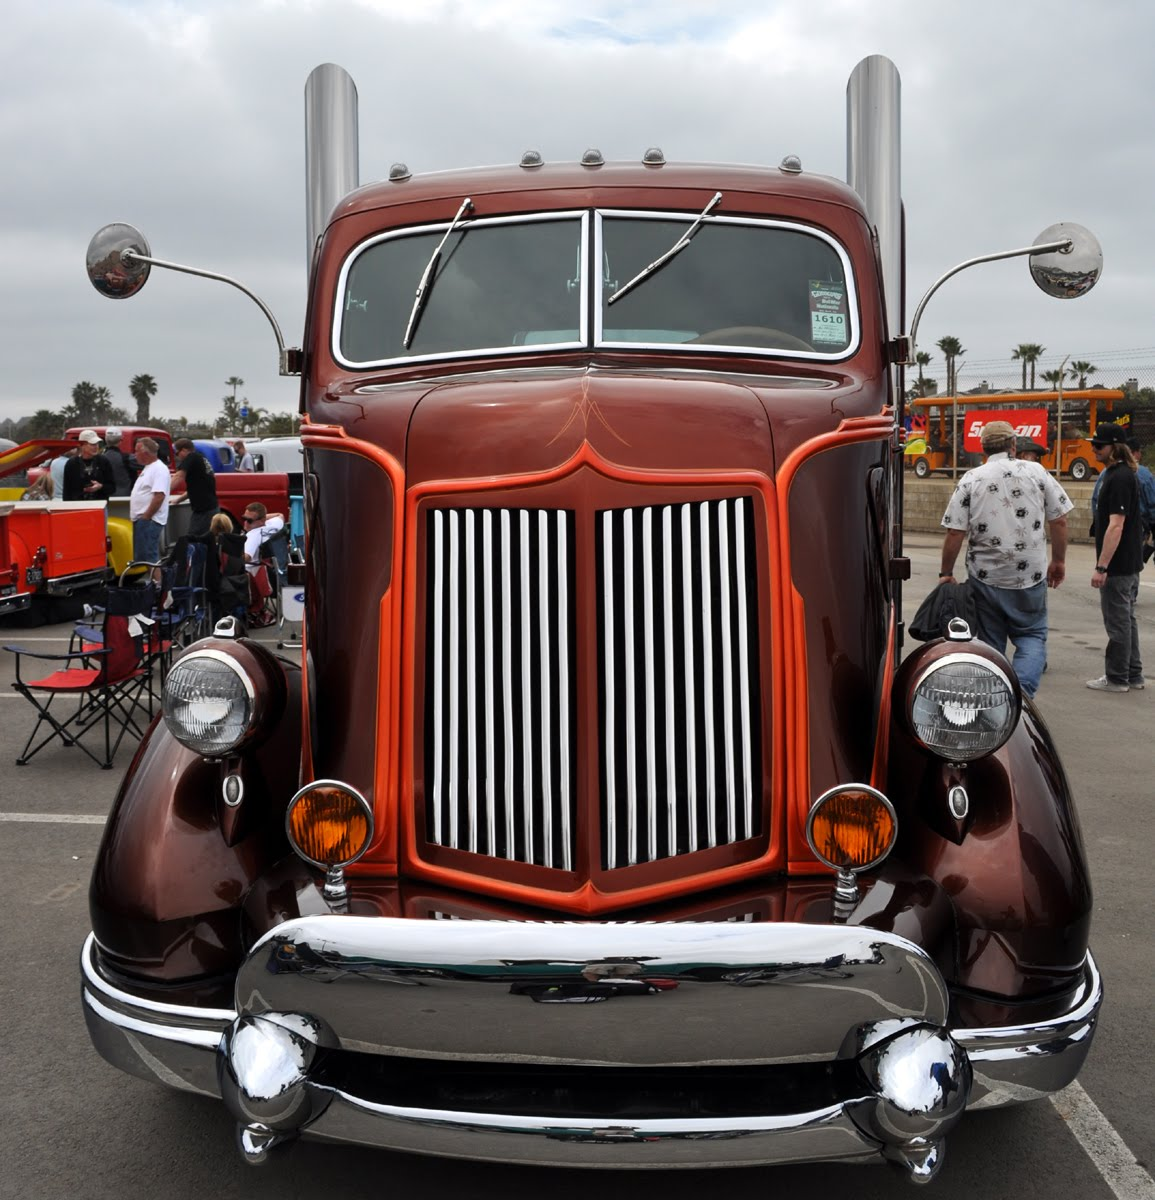 Mack Truck Rod Before And After: Just A Car Guy: Al Meyling's '47 Cab Over Hot Rod Hauler